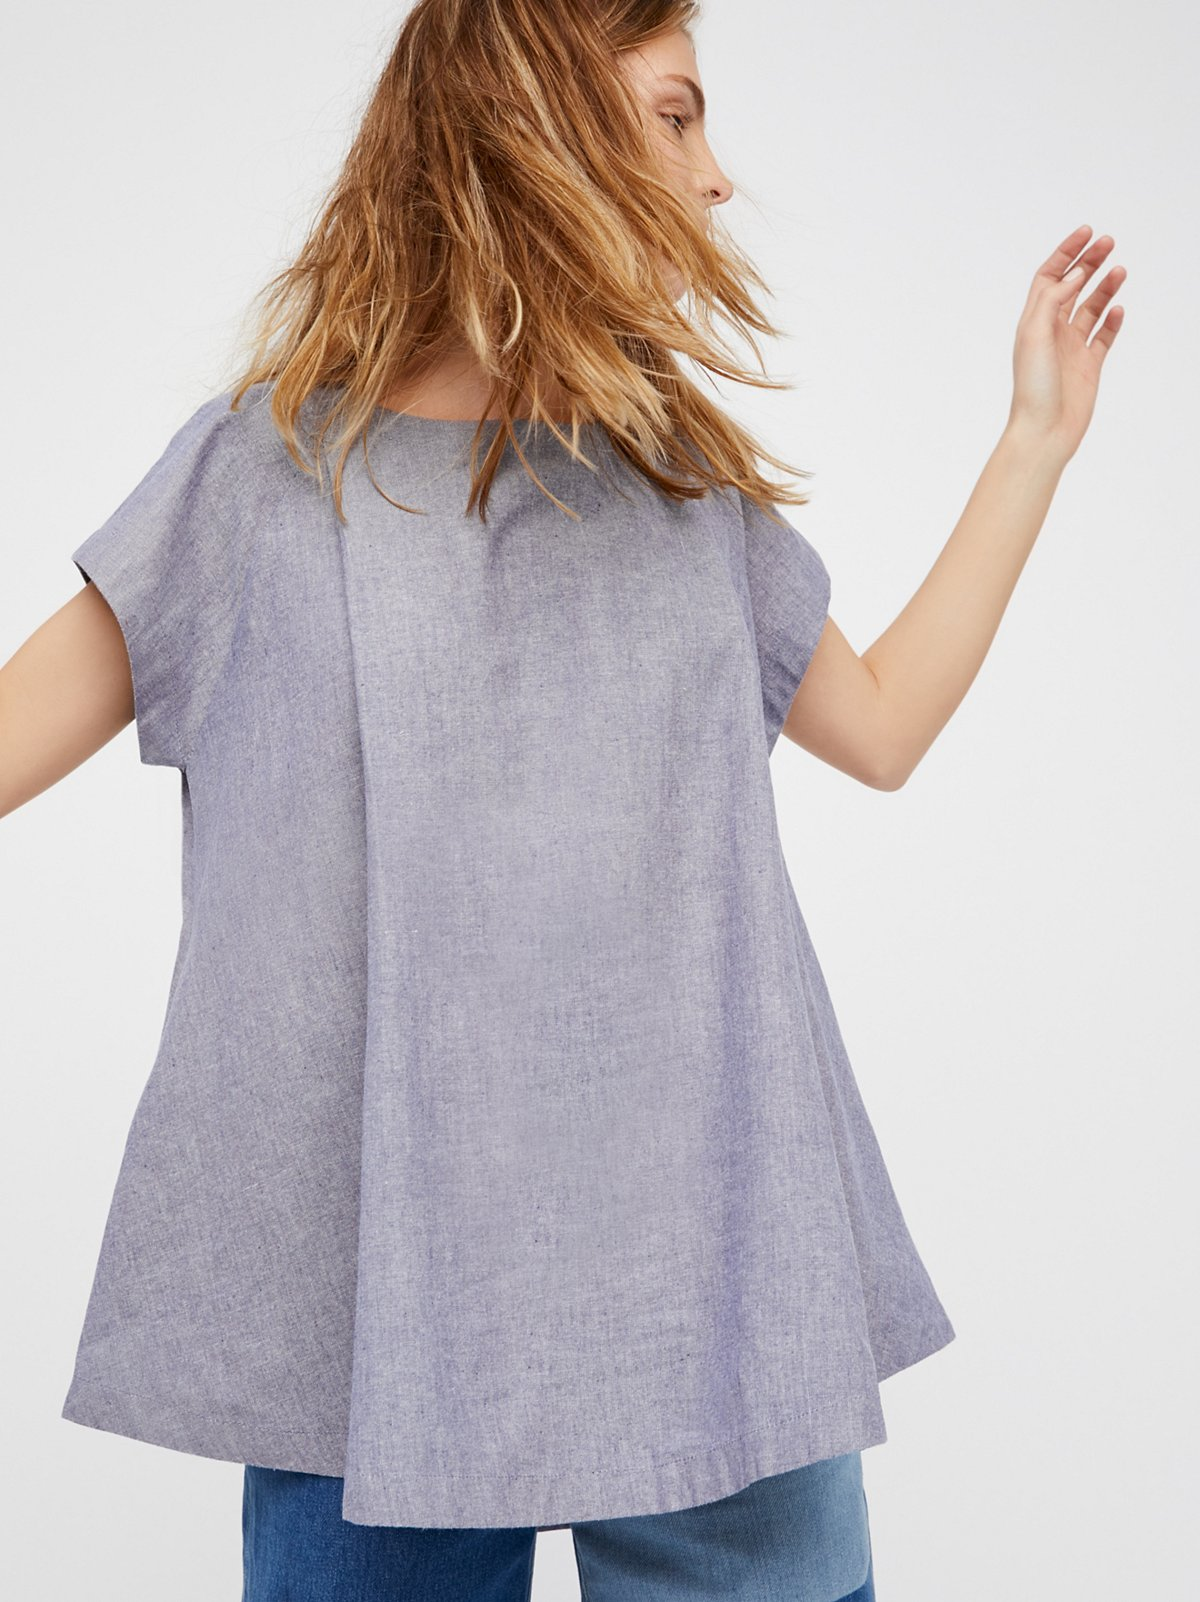 Crazy Hearts Chambray Top